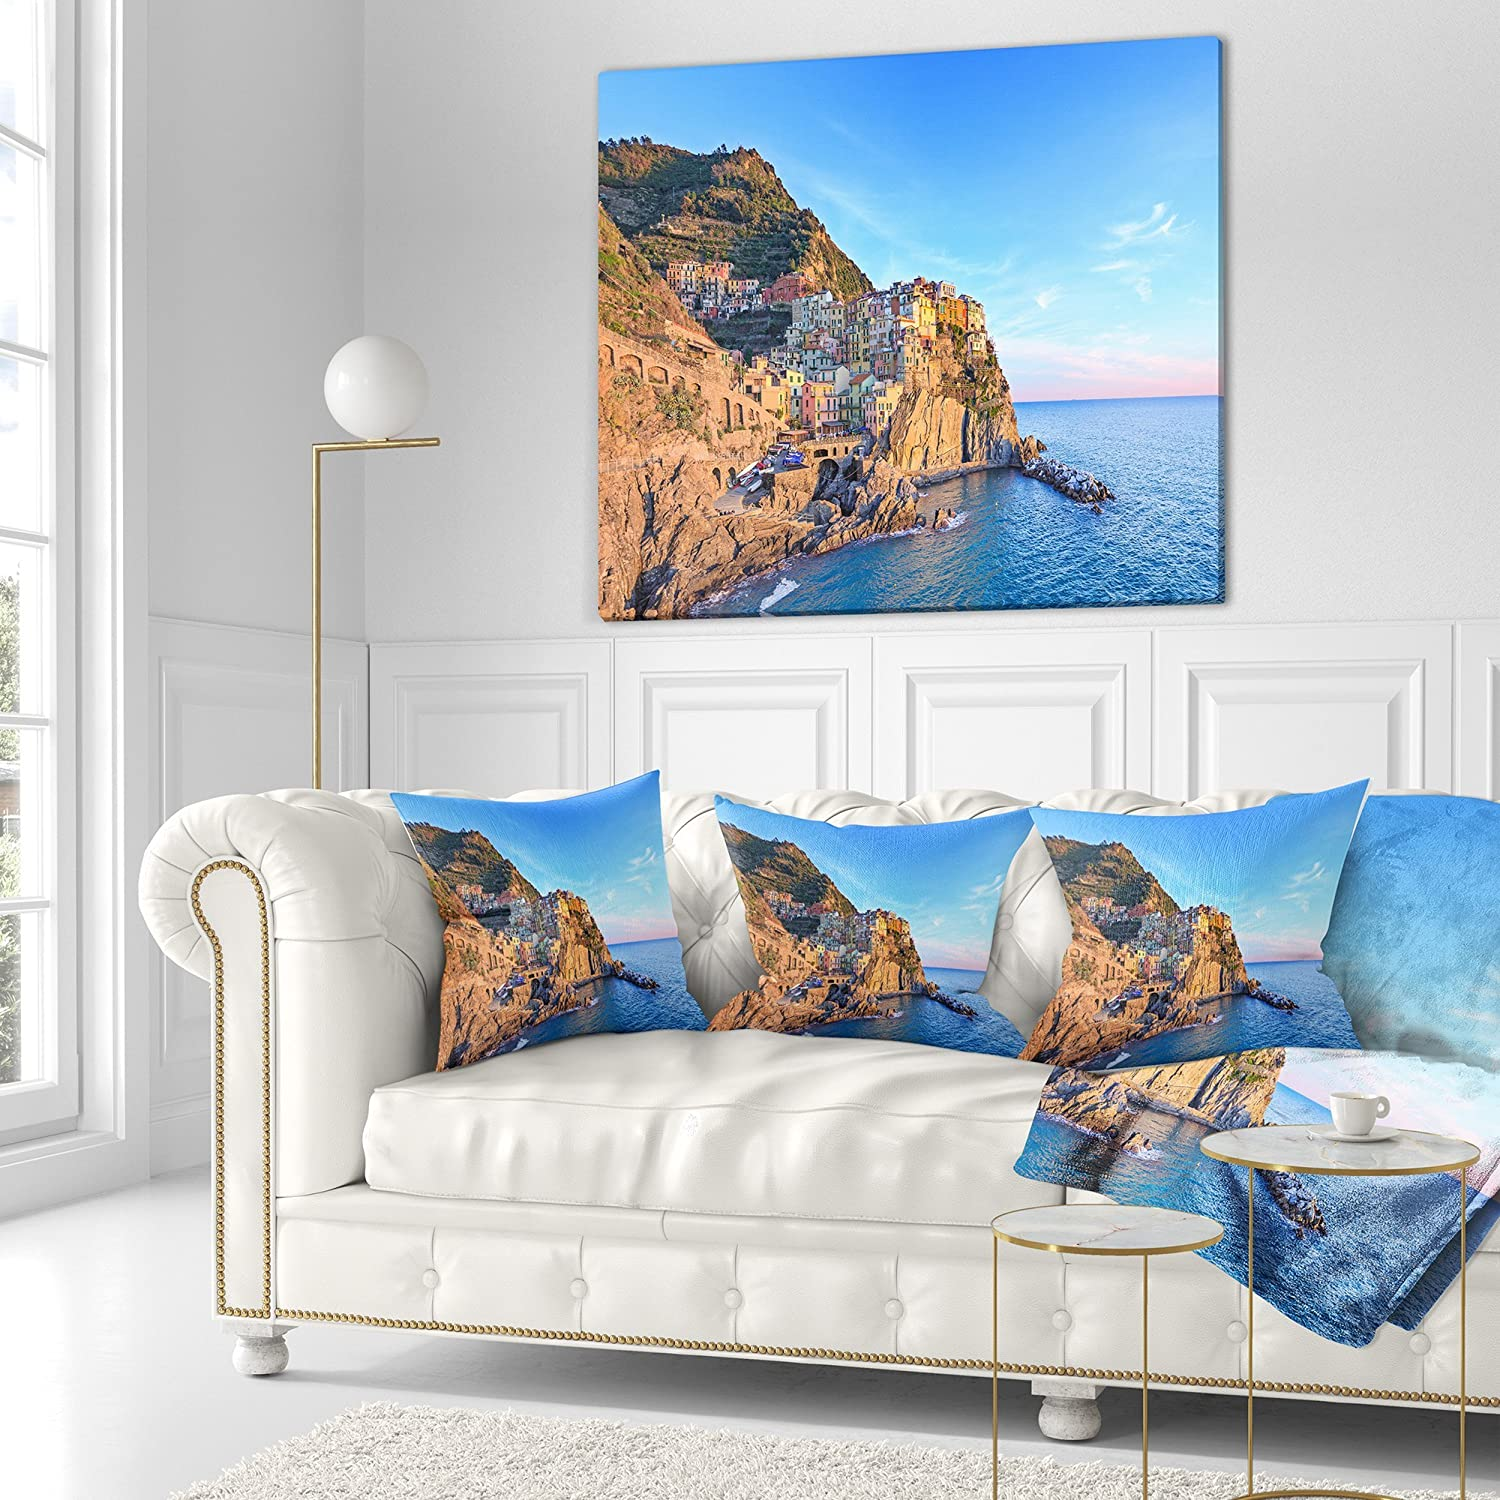 in Designart CU11387-16-16 Manarola Village Cinque Terre Italy Seashore Cushion Cover for Living Room Sofa Throw Pillow 16 in x 16 in Insert Printed On Both Side